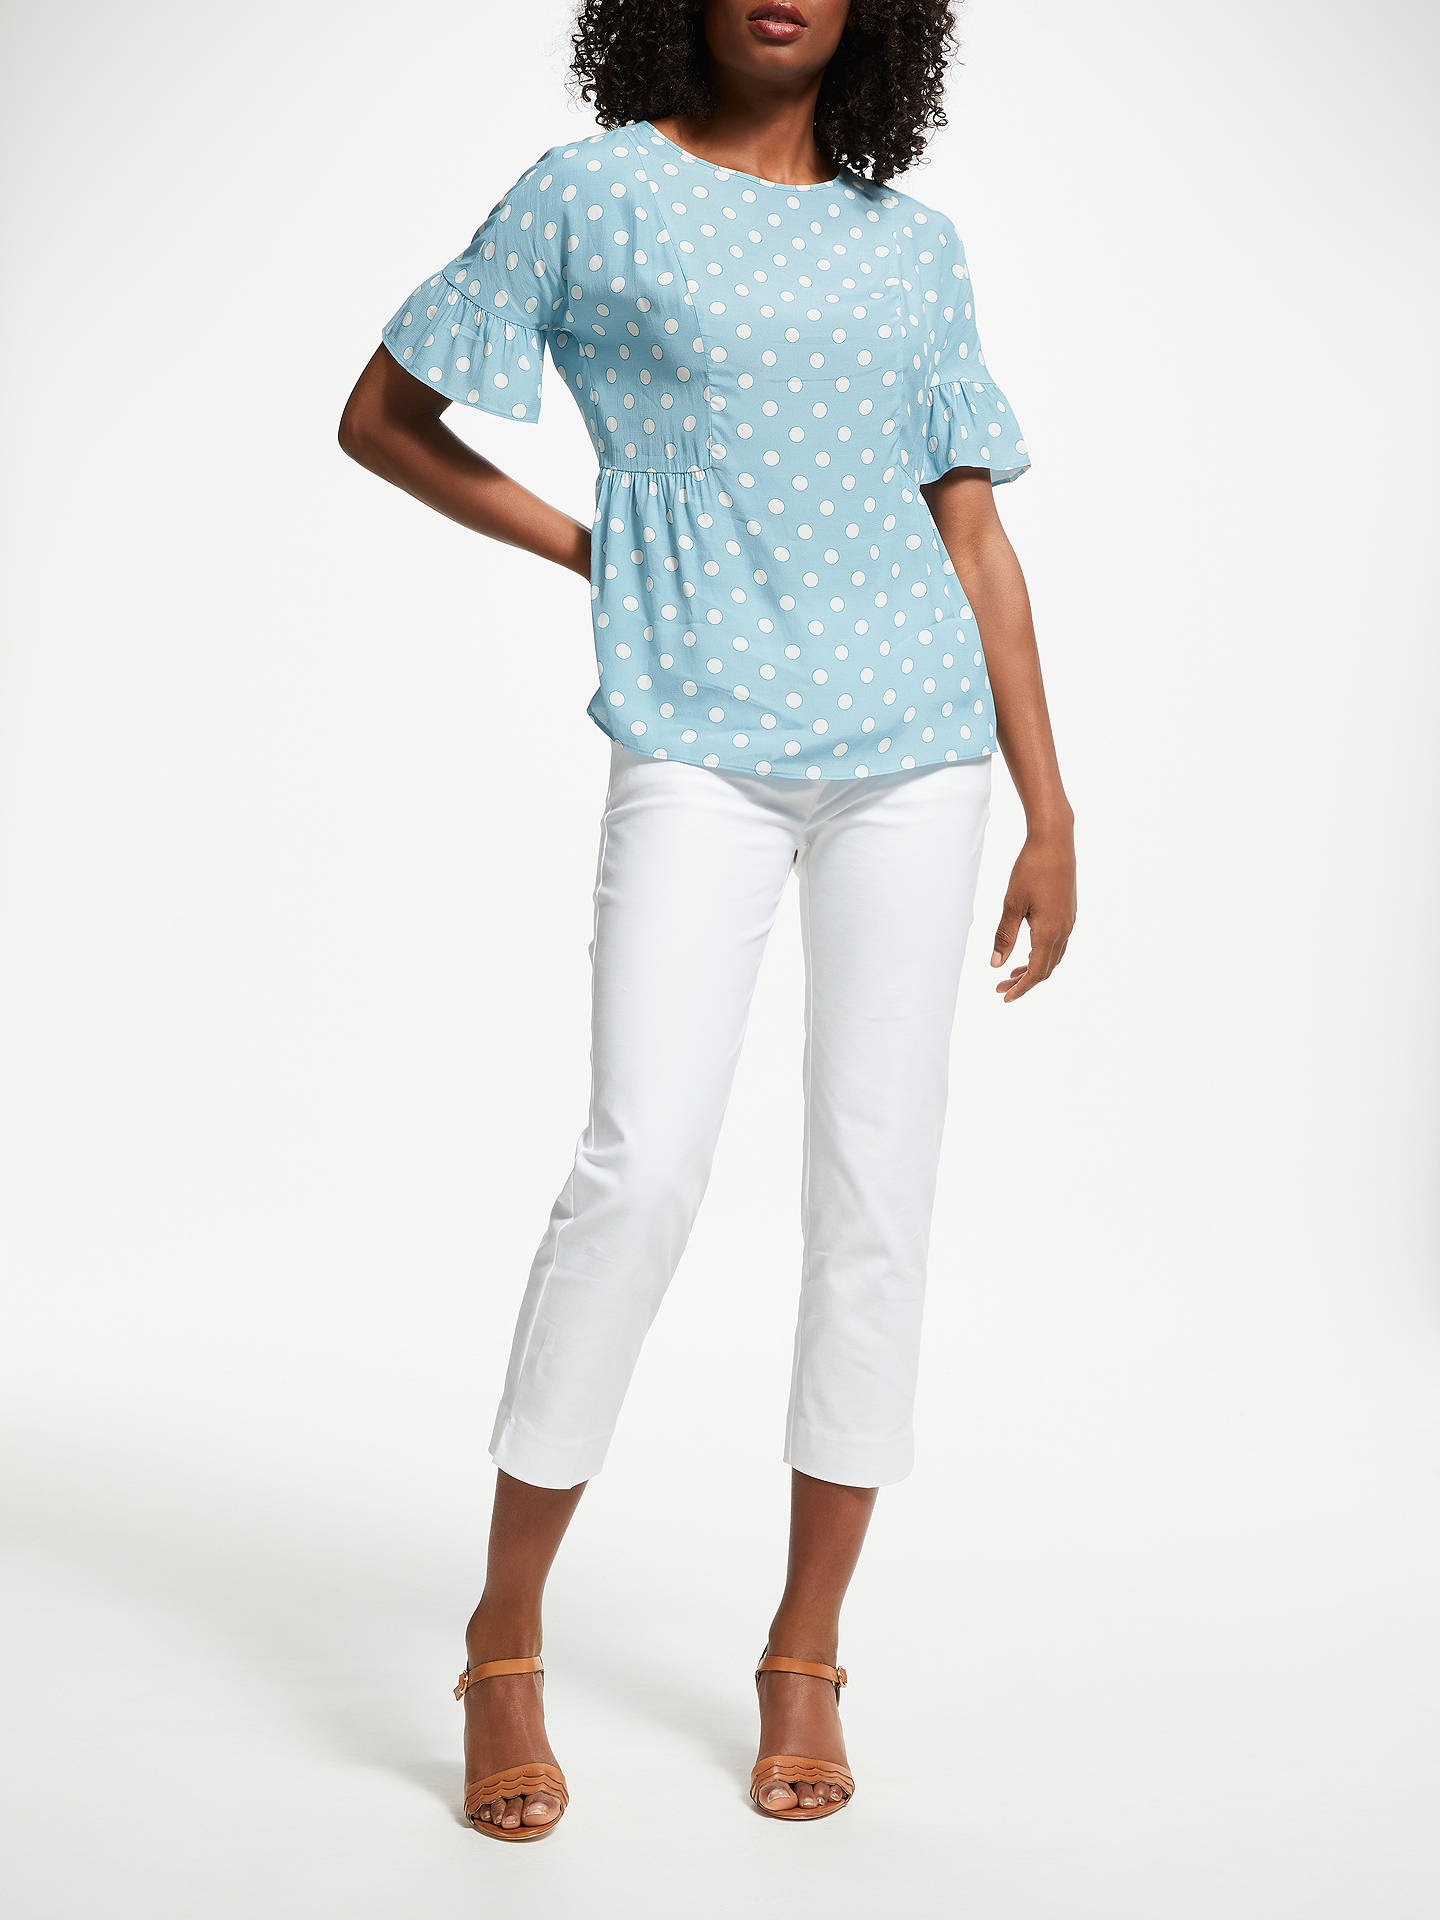 BuyBoden Carlene Polak Dot Frll Sleeve Top, Blue, 16 Online at johnlewis.com